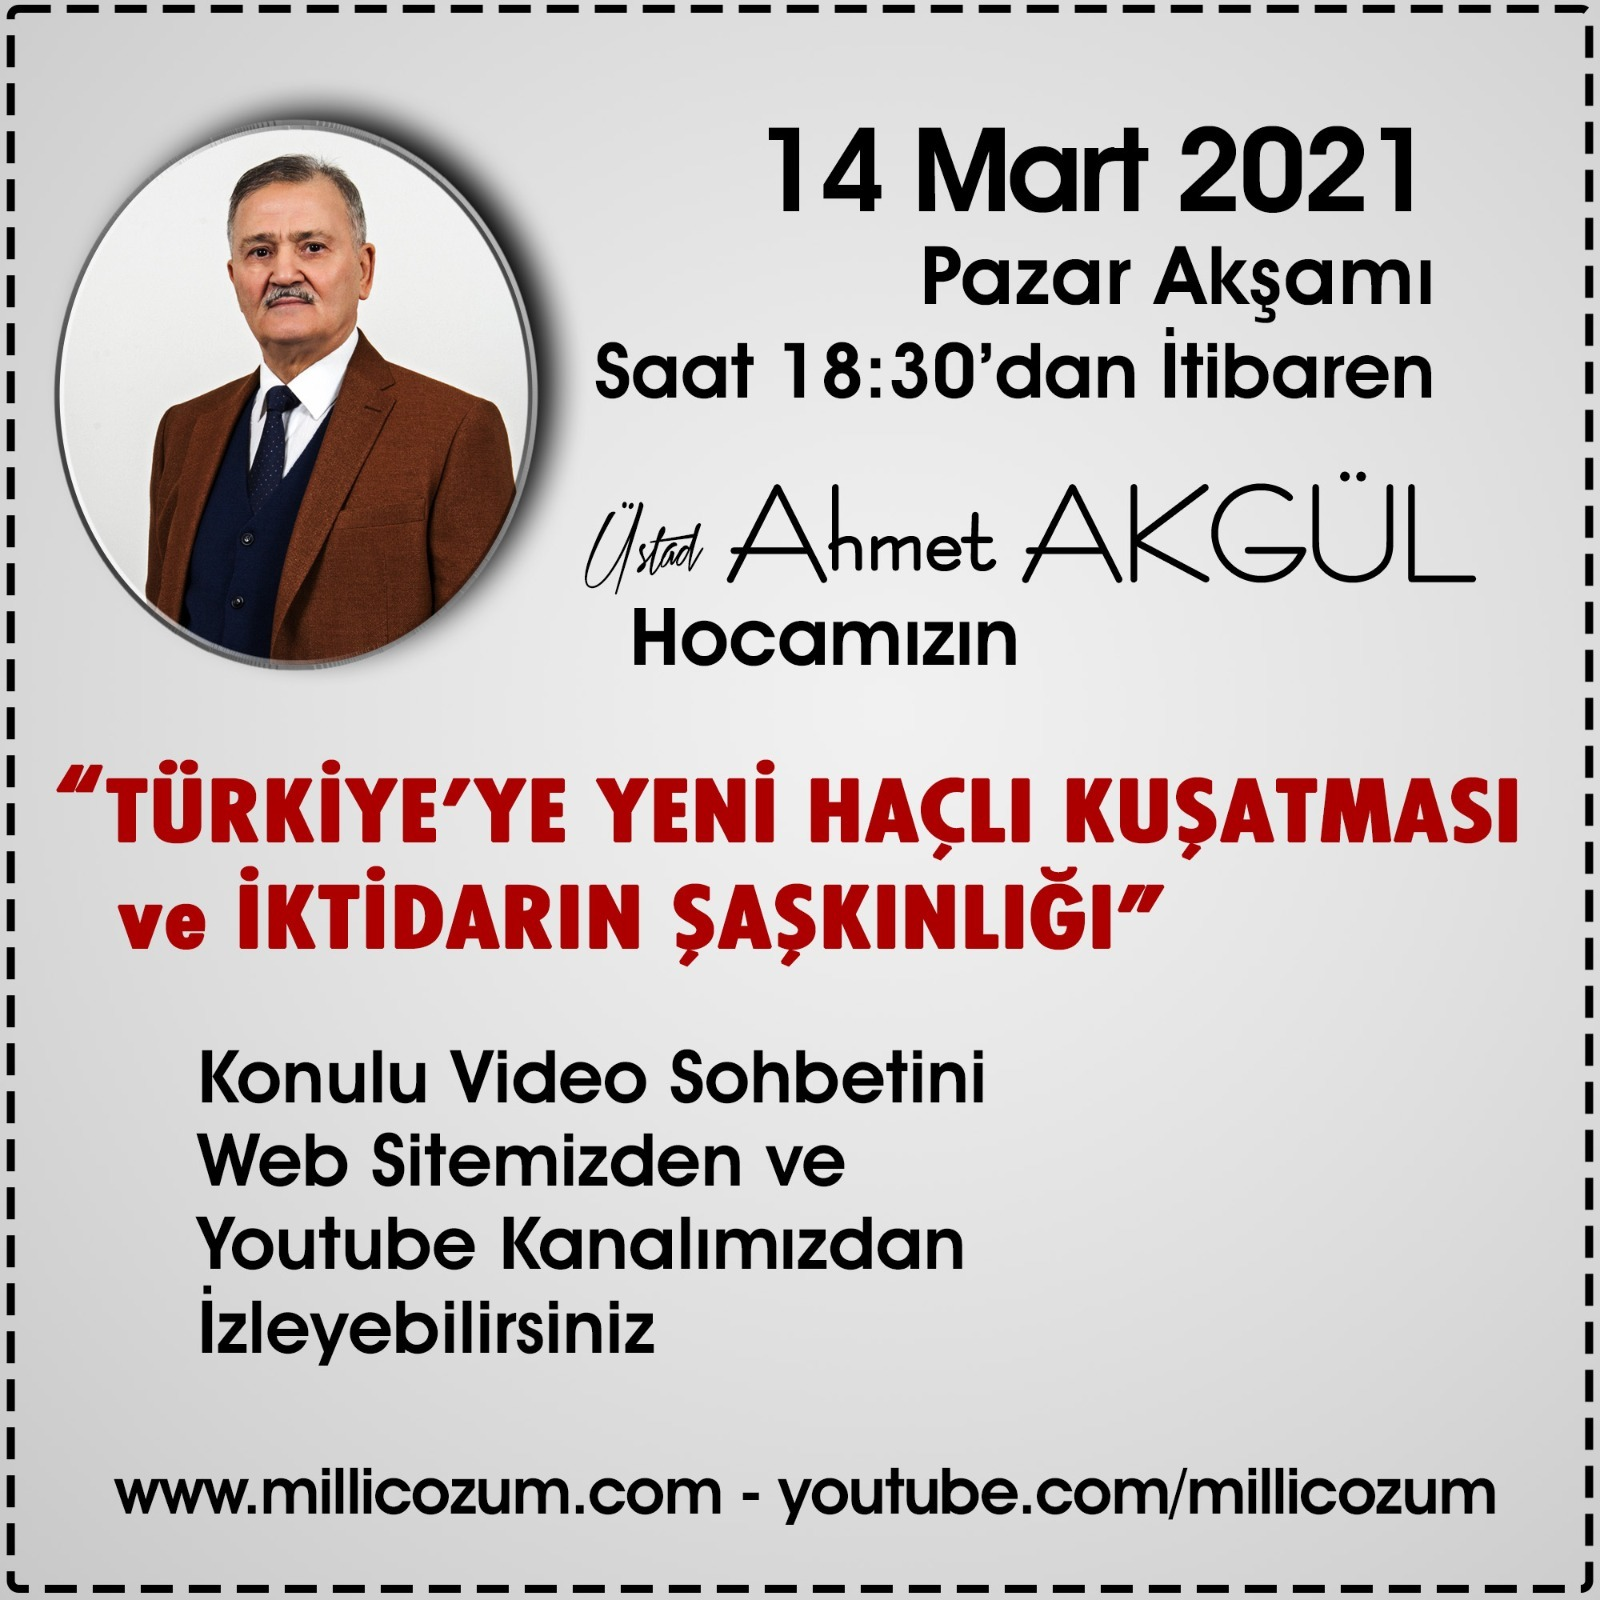 VİDEO KONFERANS'A DAVET!